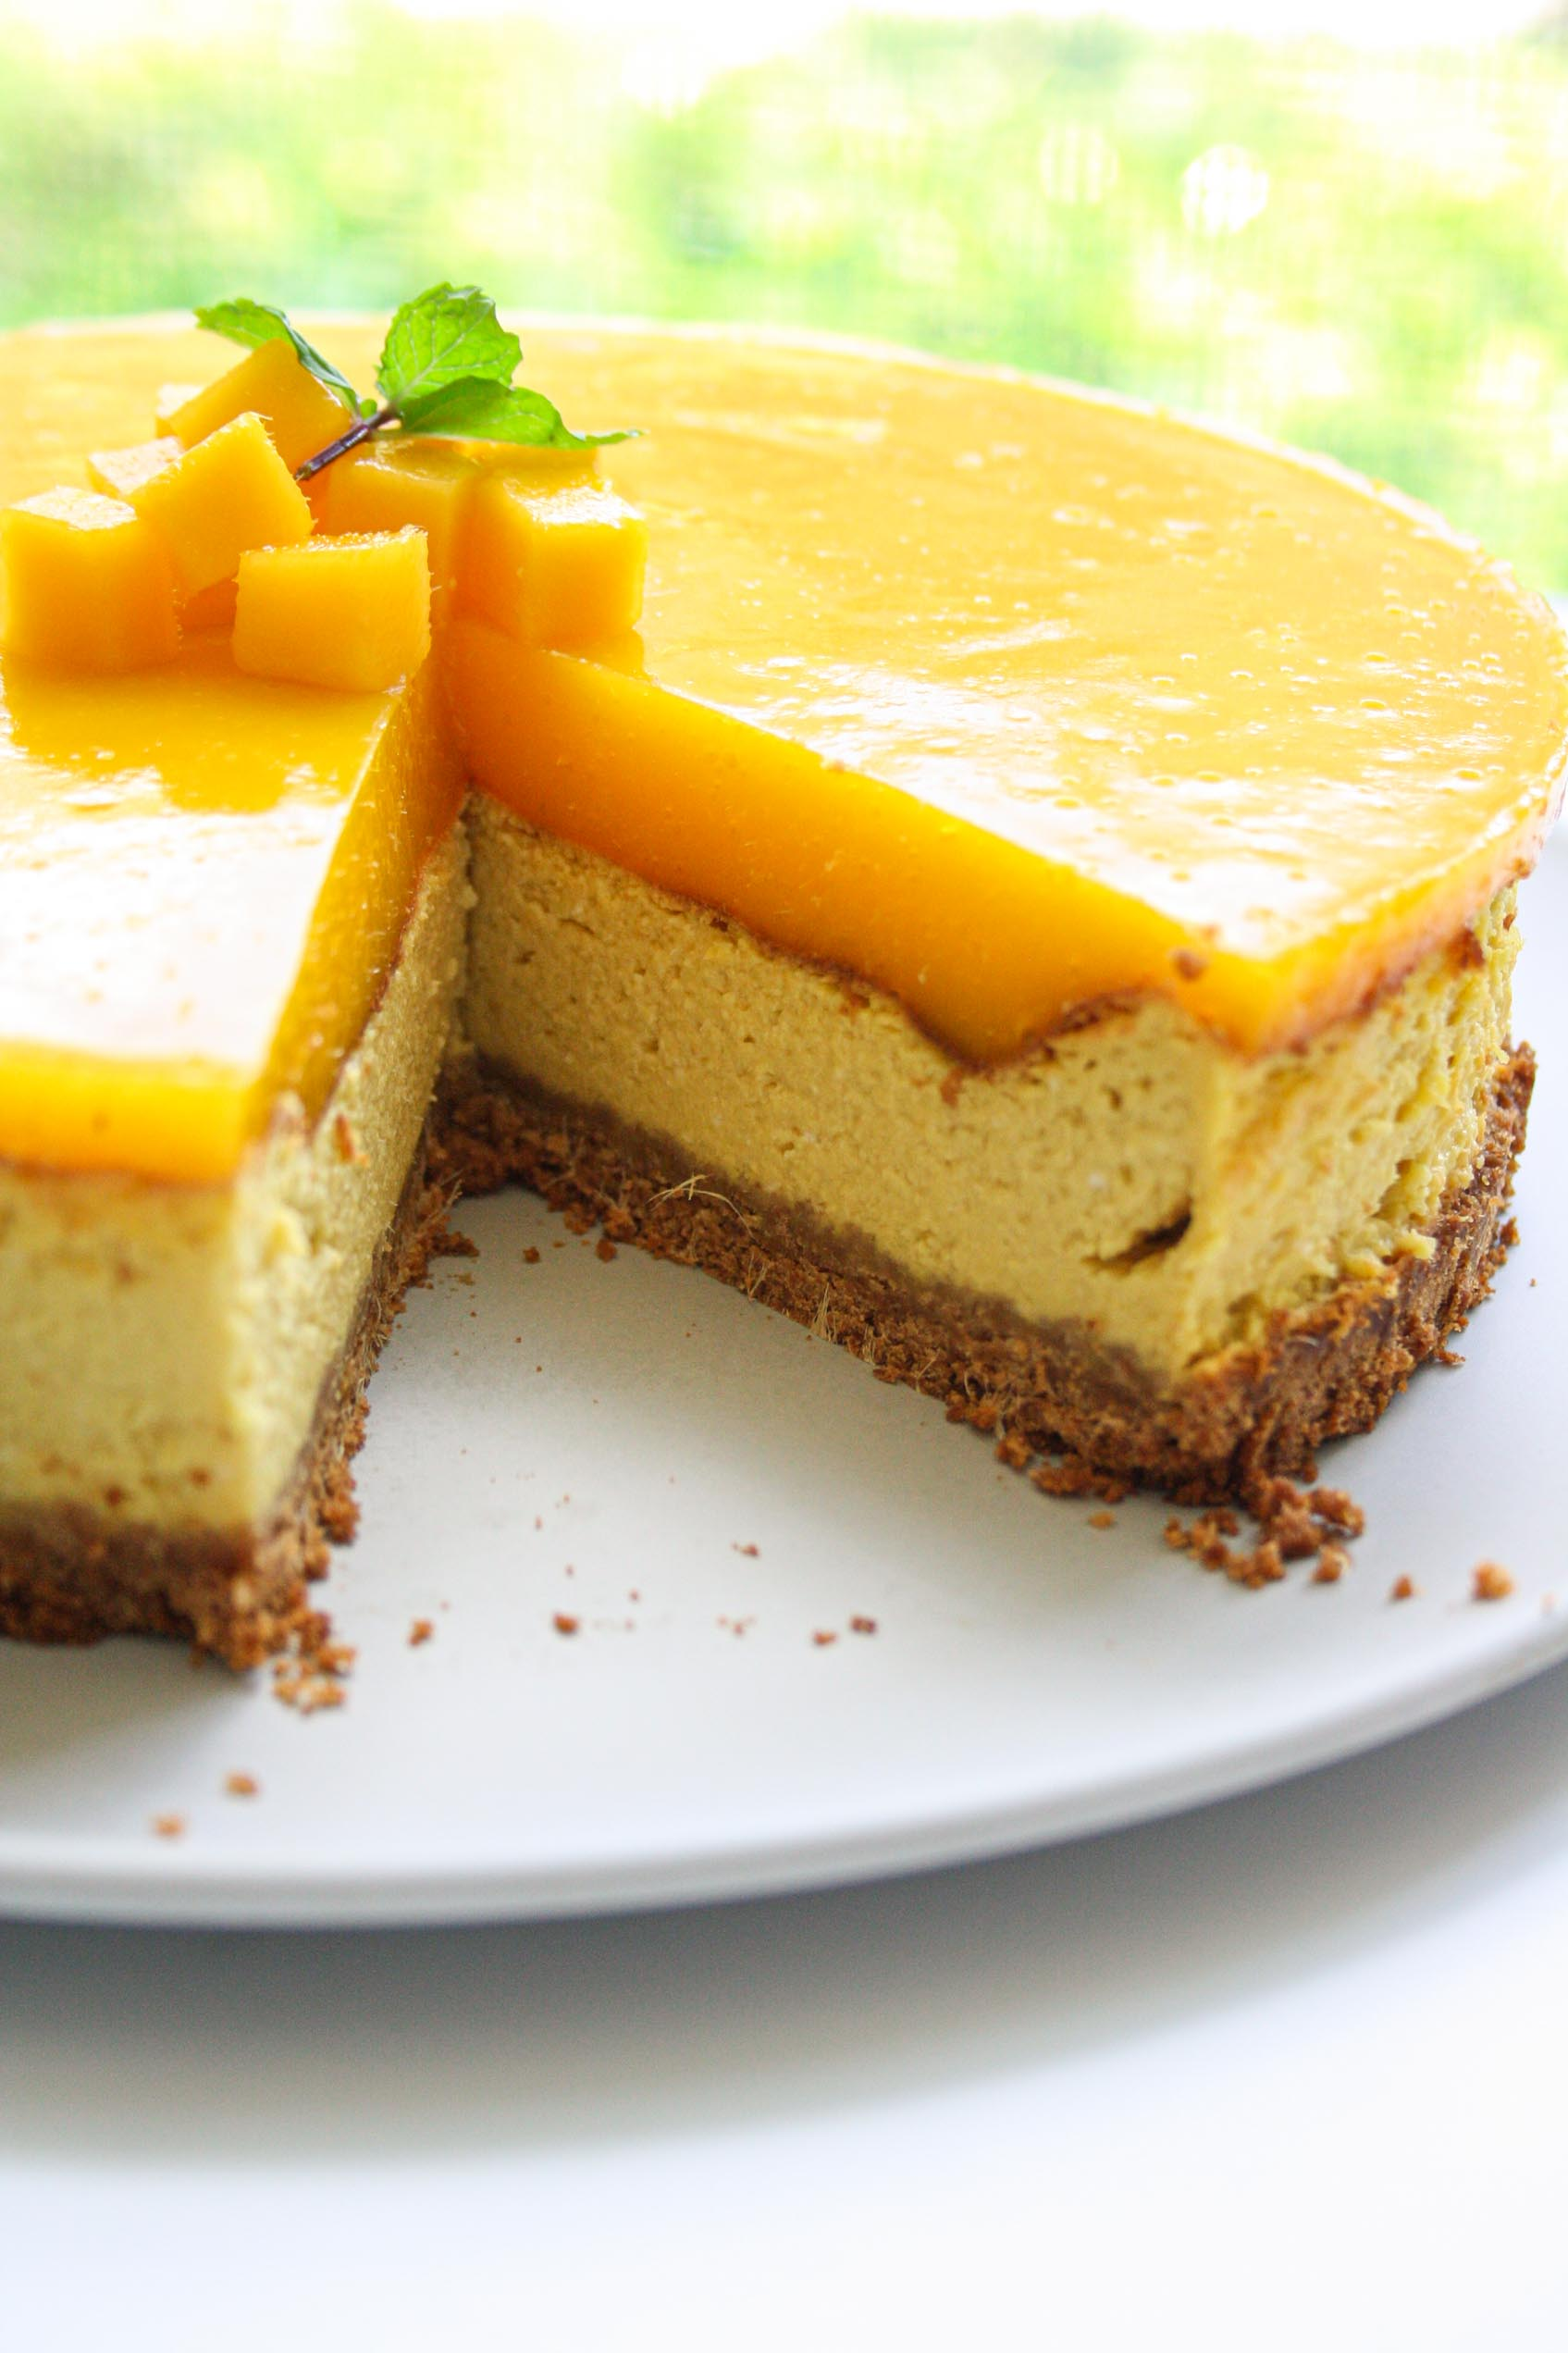 view from the side of a mango cheesecake with a cut out slice